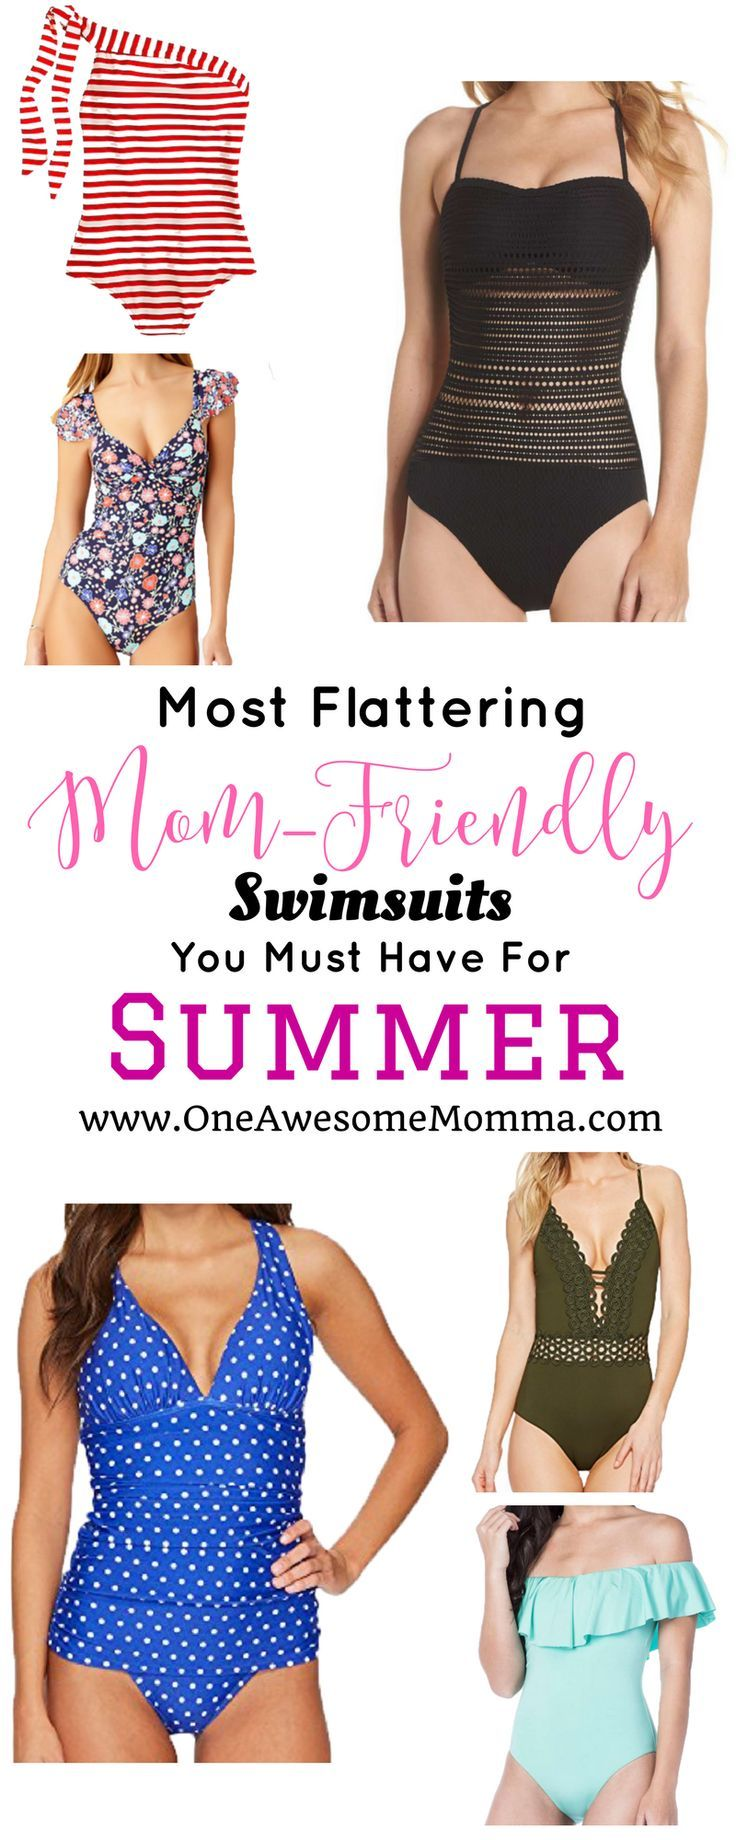 c1d87cc978 The Most Flattering Mom-Friendly Swimsuits You Should Have For Summer - One  Awesome Momma